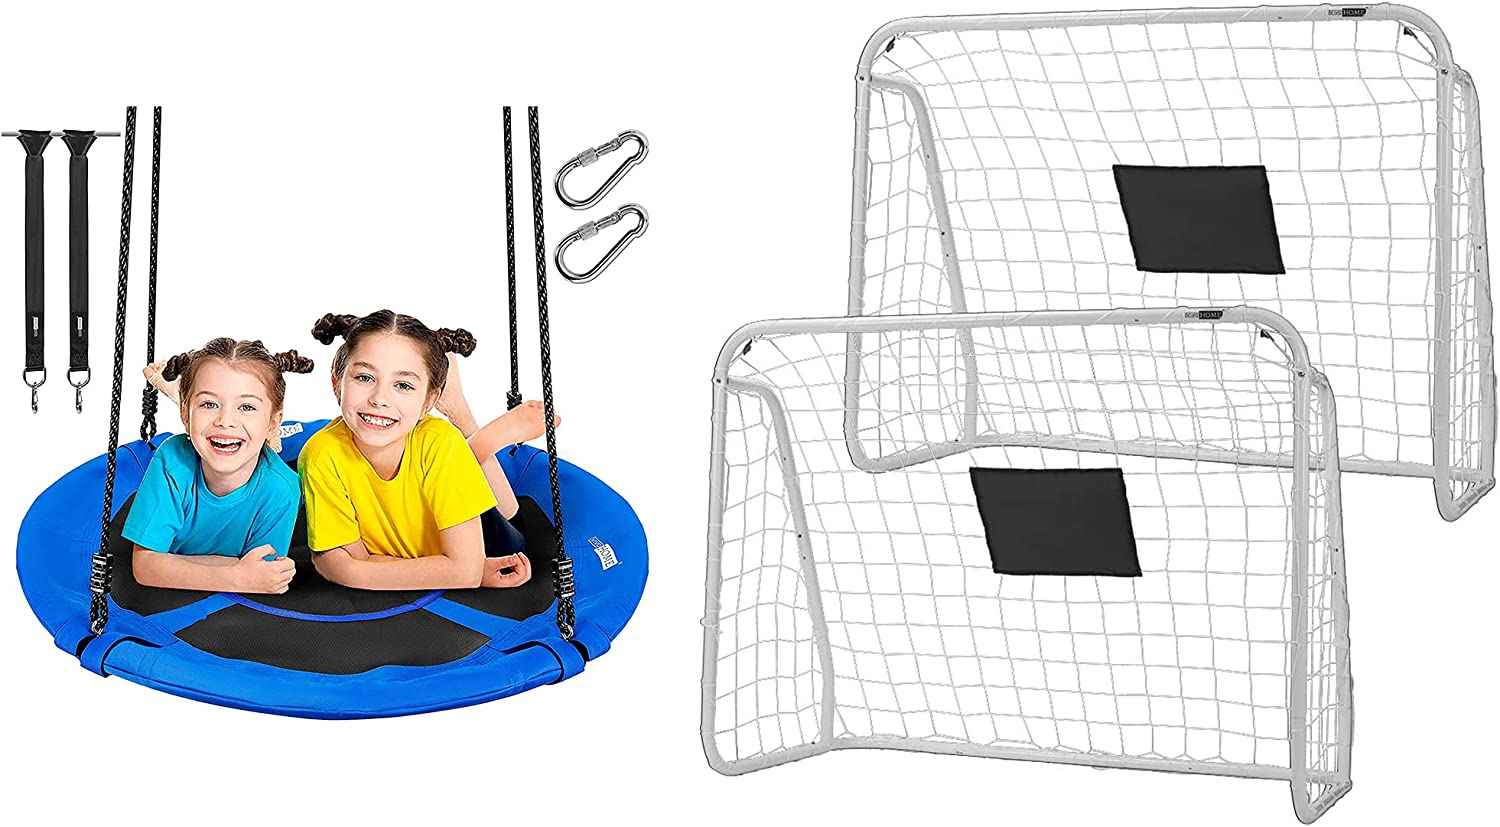 VIVOHOME safety 41 Inch 600 lbs Saucer Blue 67% OFF of fixed price for Adults Kids Swing Tree